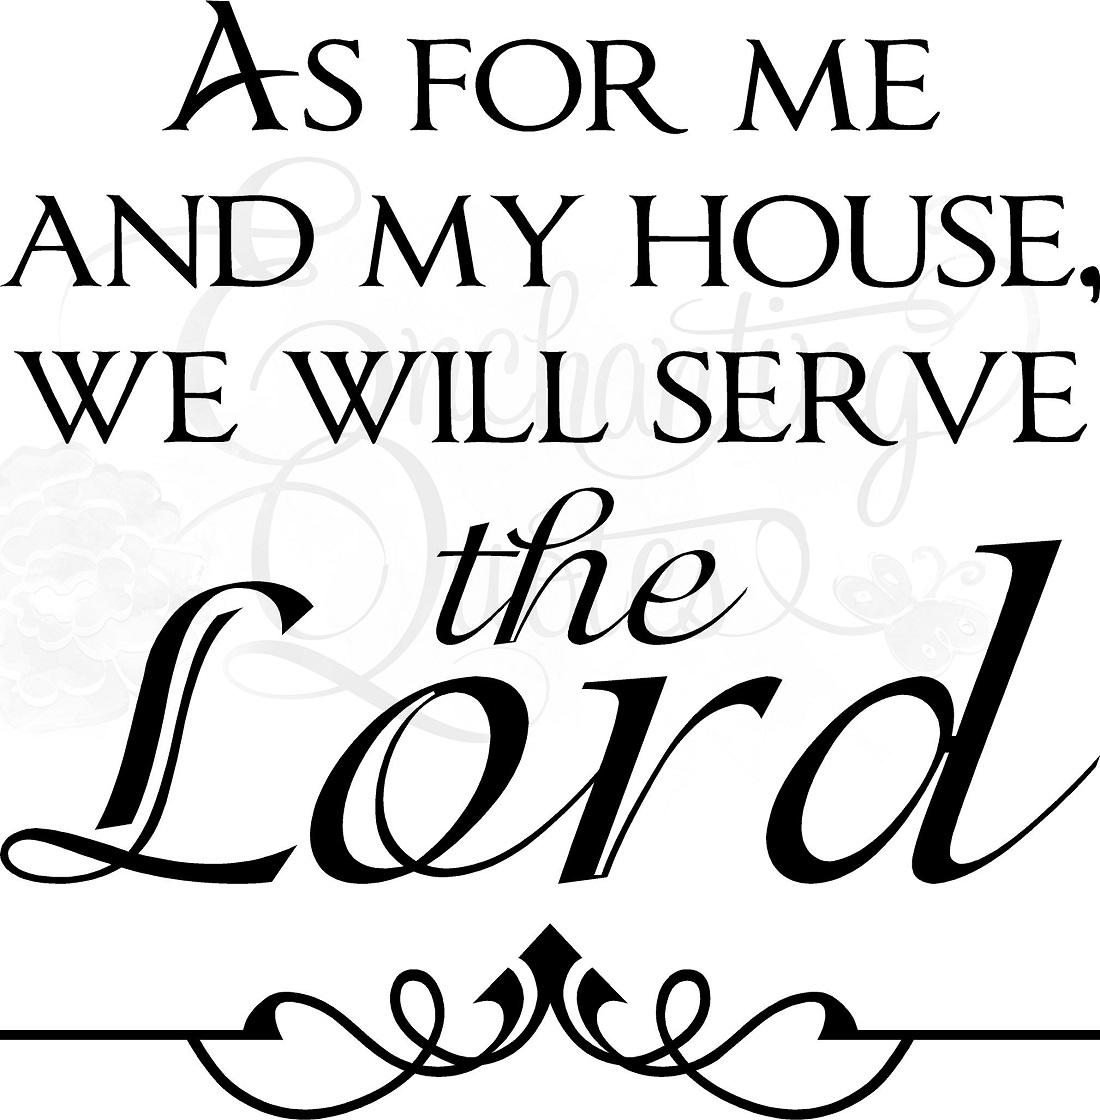 Religious Quotes | Vinyl Wall Sayings | As For Me And My House Within As For Me And My House Vinyl Wall Art (Image 13 of 20)